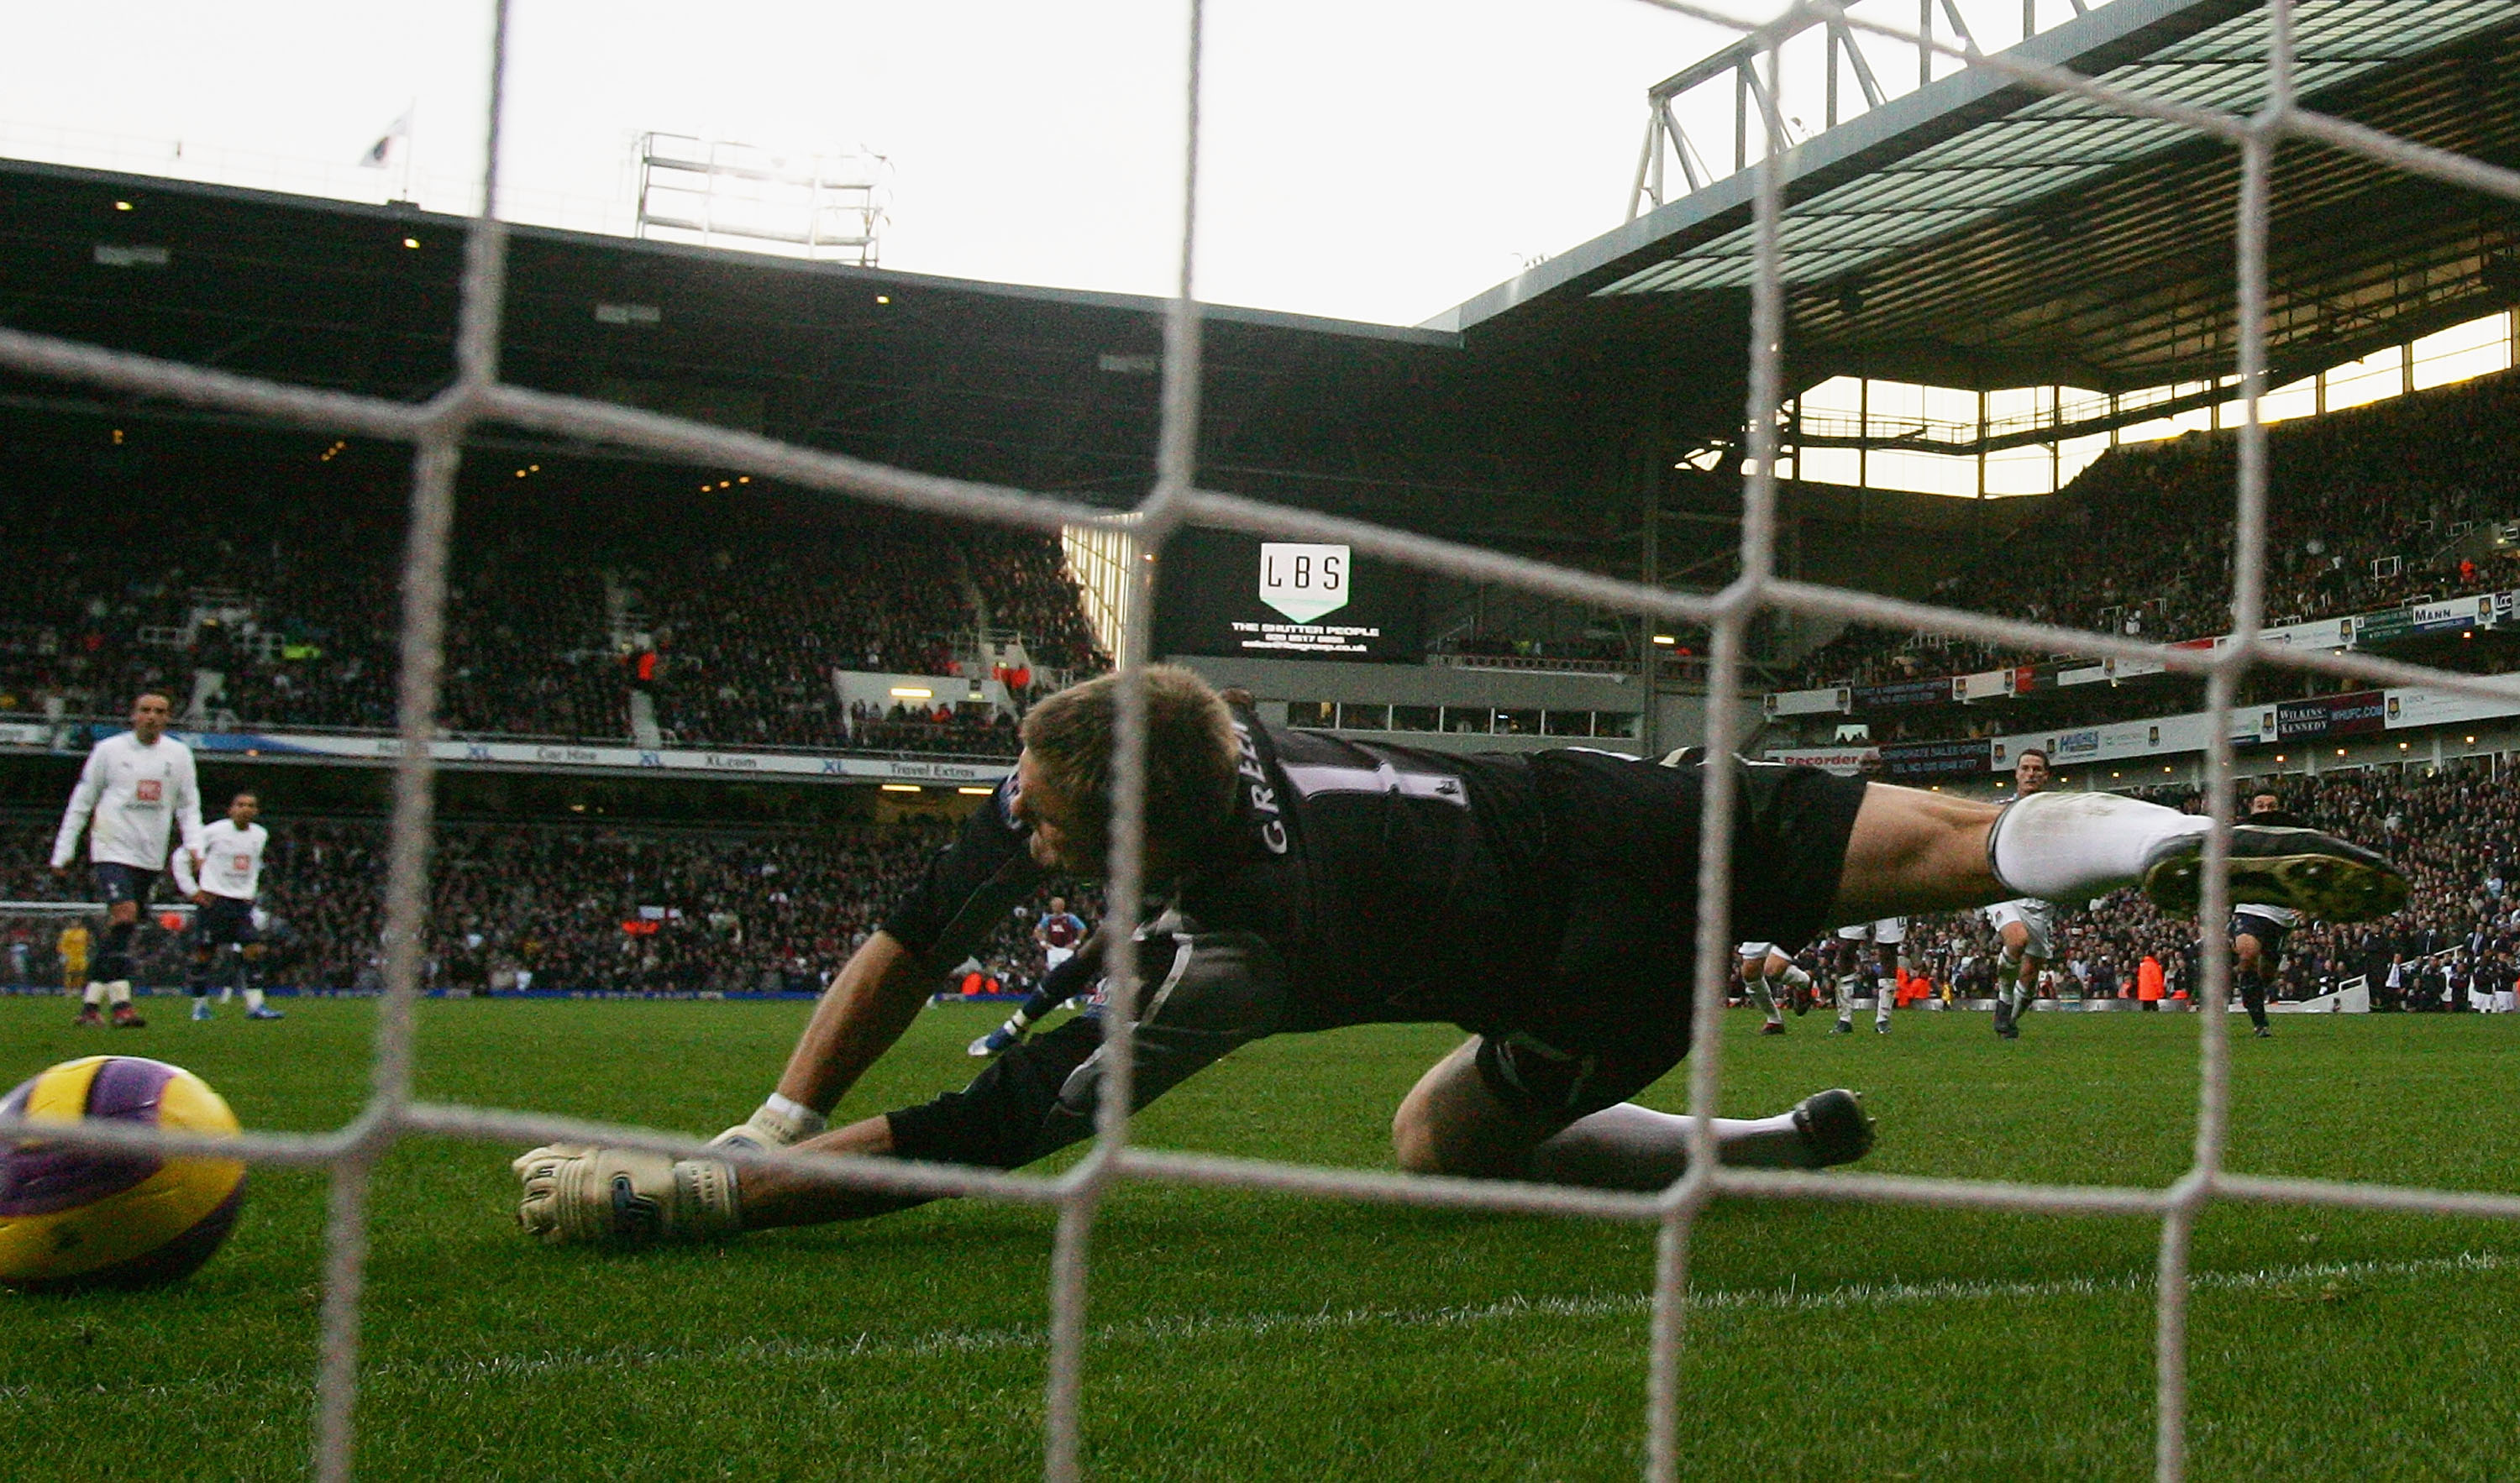 LONDON - NOVEMBER 25:  Robert Green of West Ham saves a penalty during the Barclays Premier League match between West Ham United and Tottenham Hotspur at Upton Park on November 25, 2007 in London, England.  (Photo by Hamish Blair/Getty Images)